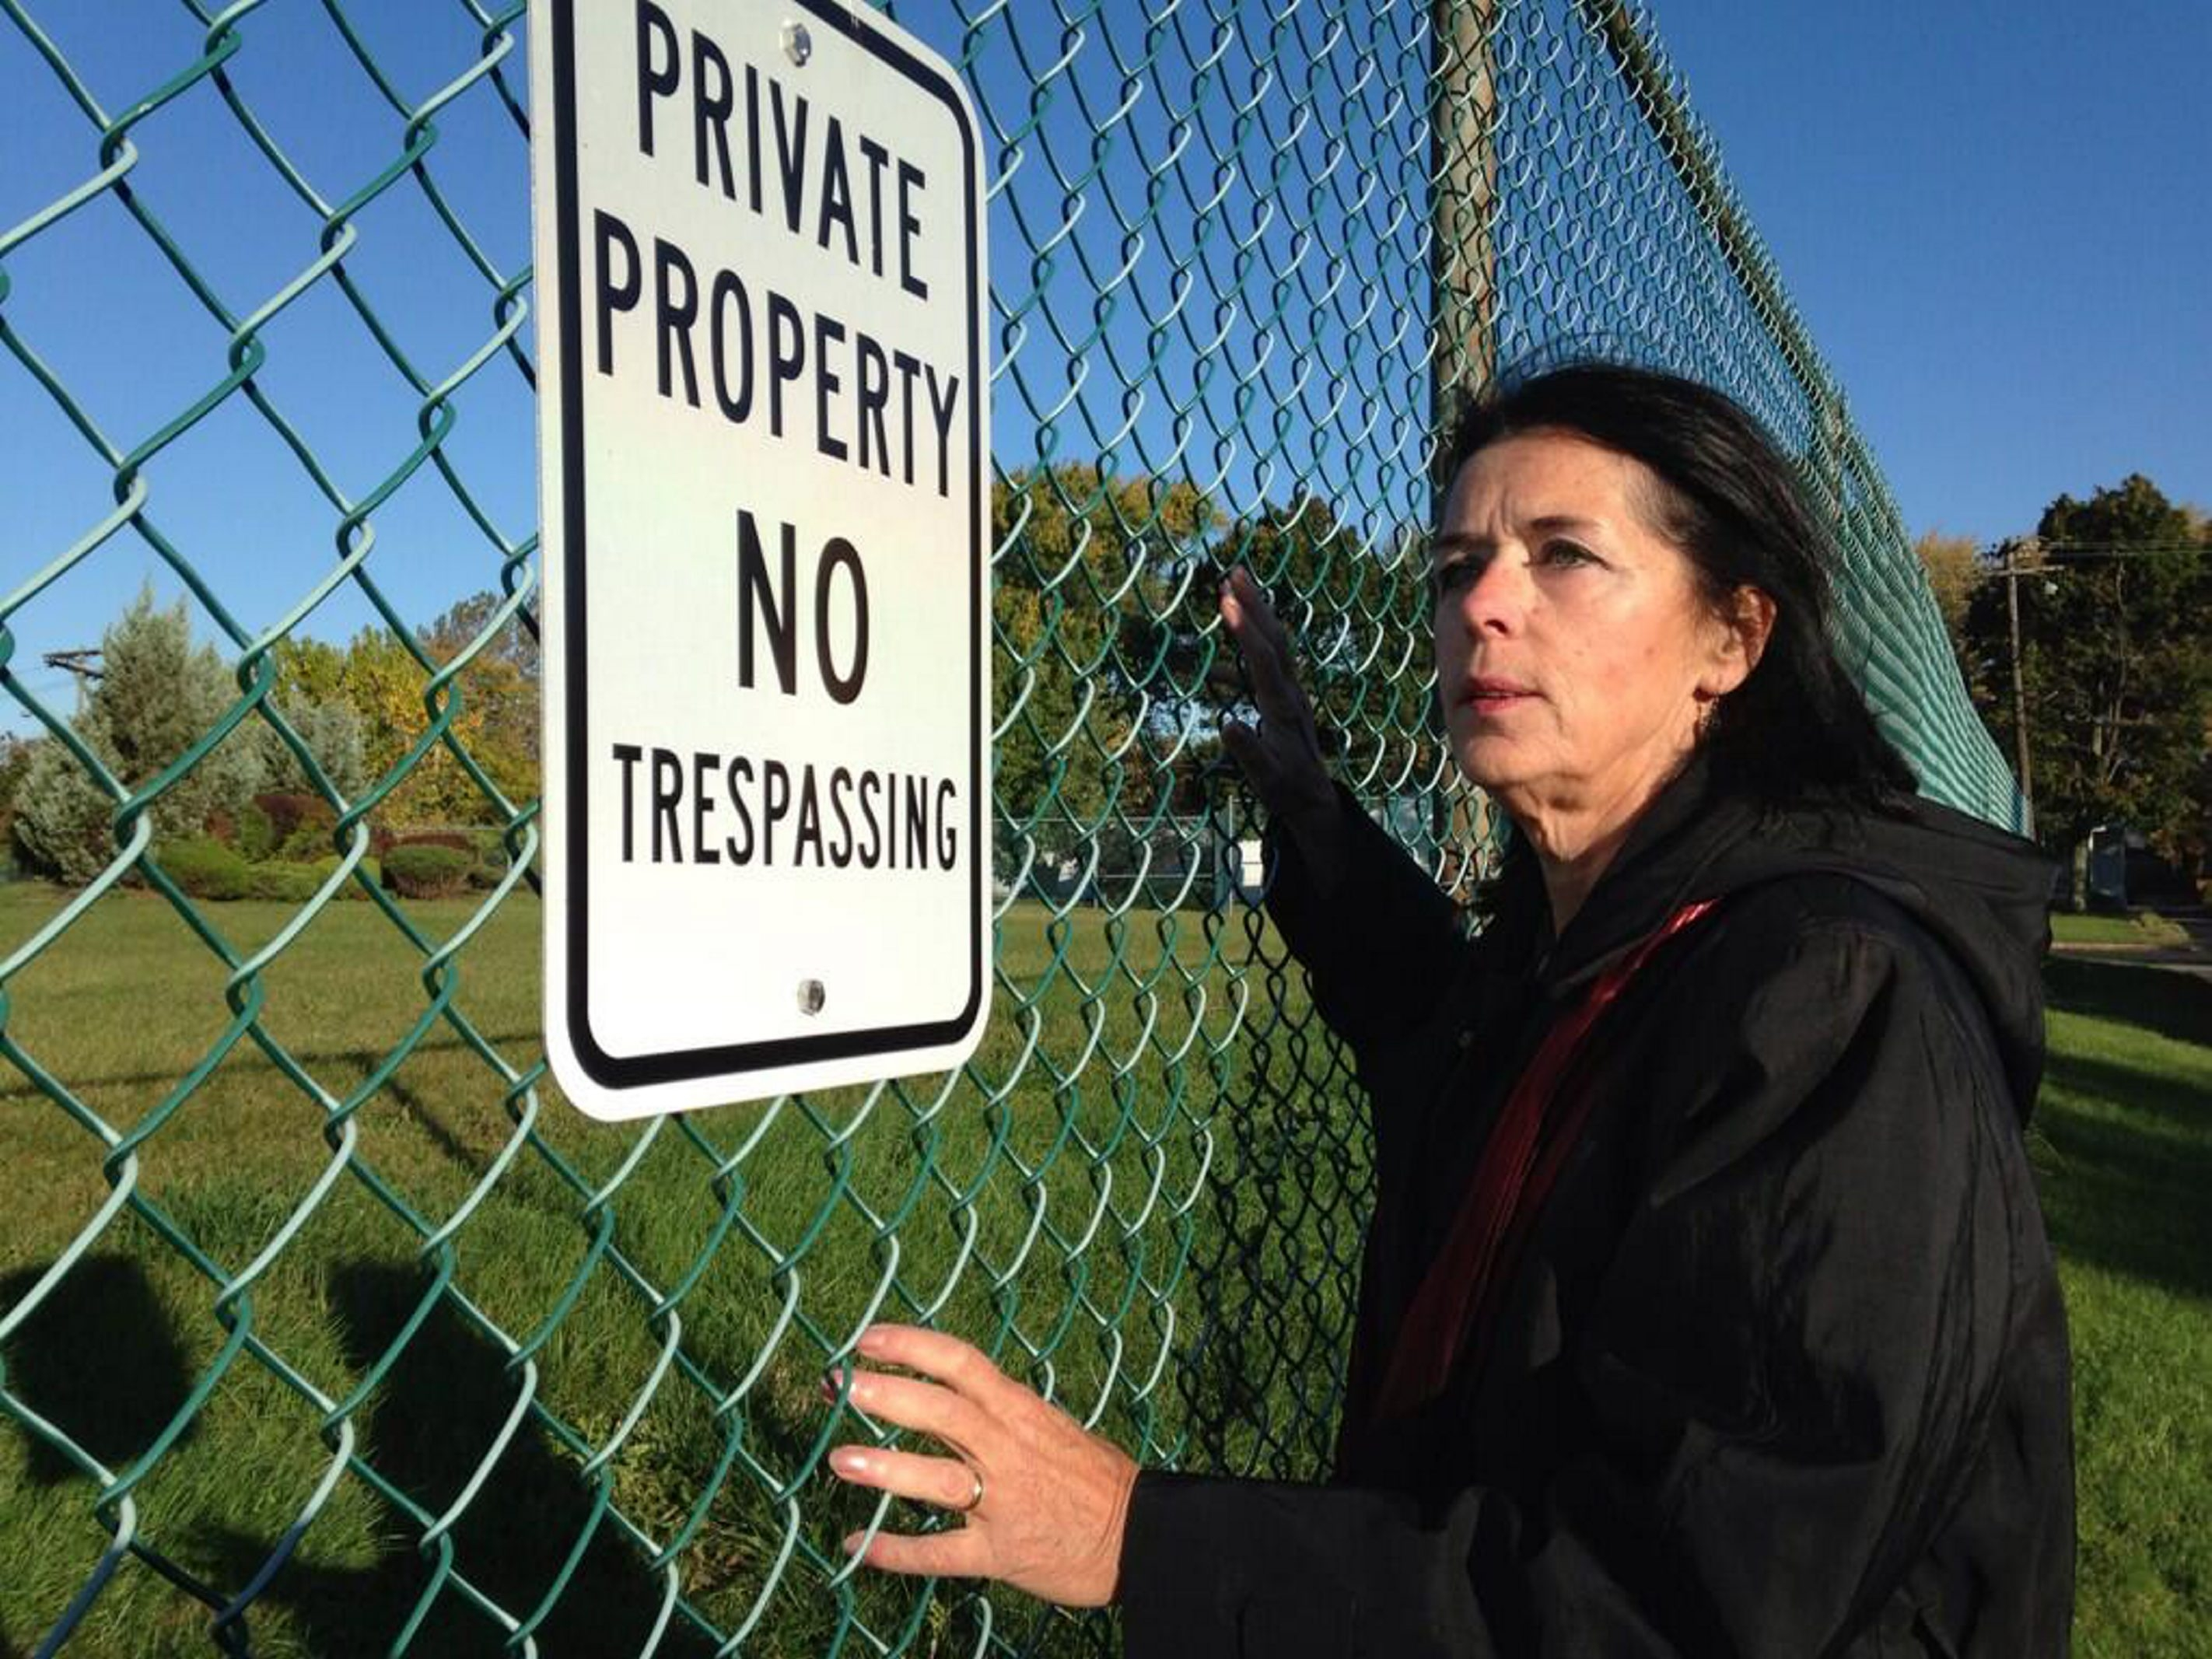 Activist and former resident Lois Gibbs returns to Love Canal on the 35th anniversary of its first evacuation.